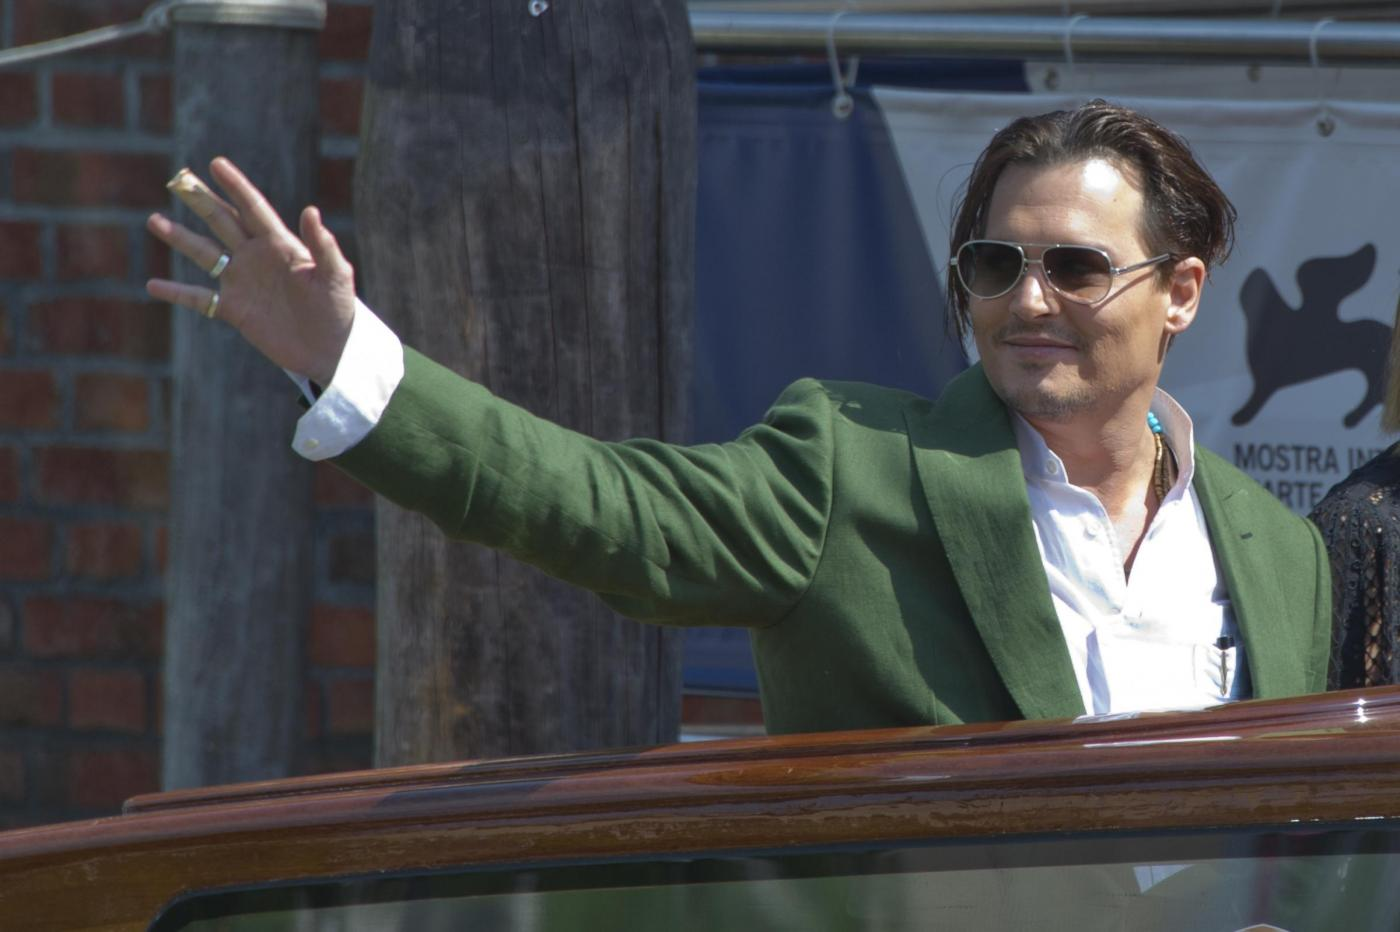 Johnny Depp e Dakota Johnson al Festival di Venezia 2015 per l'anteprima di Black Mass